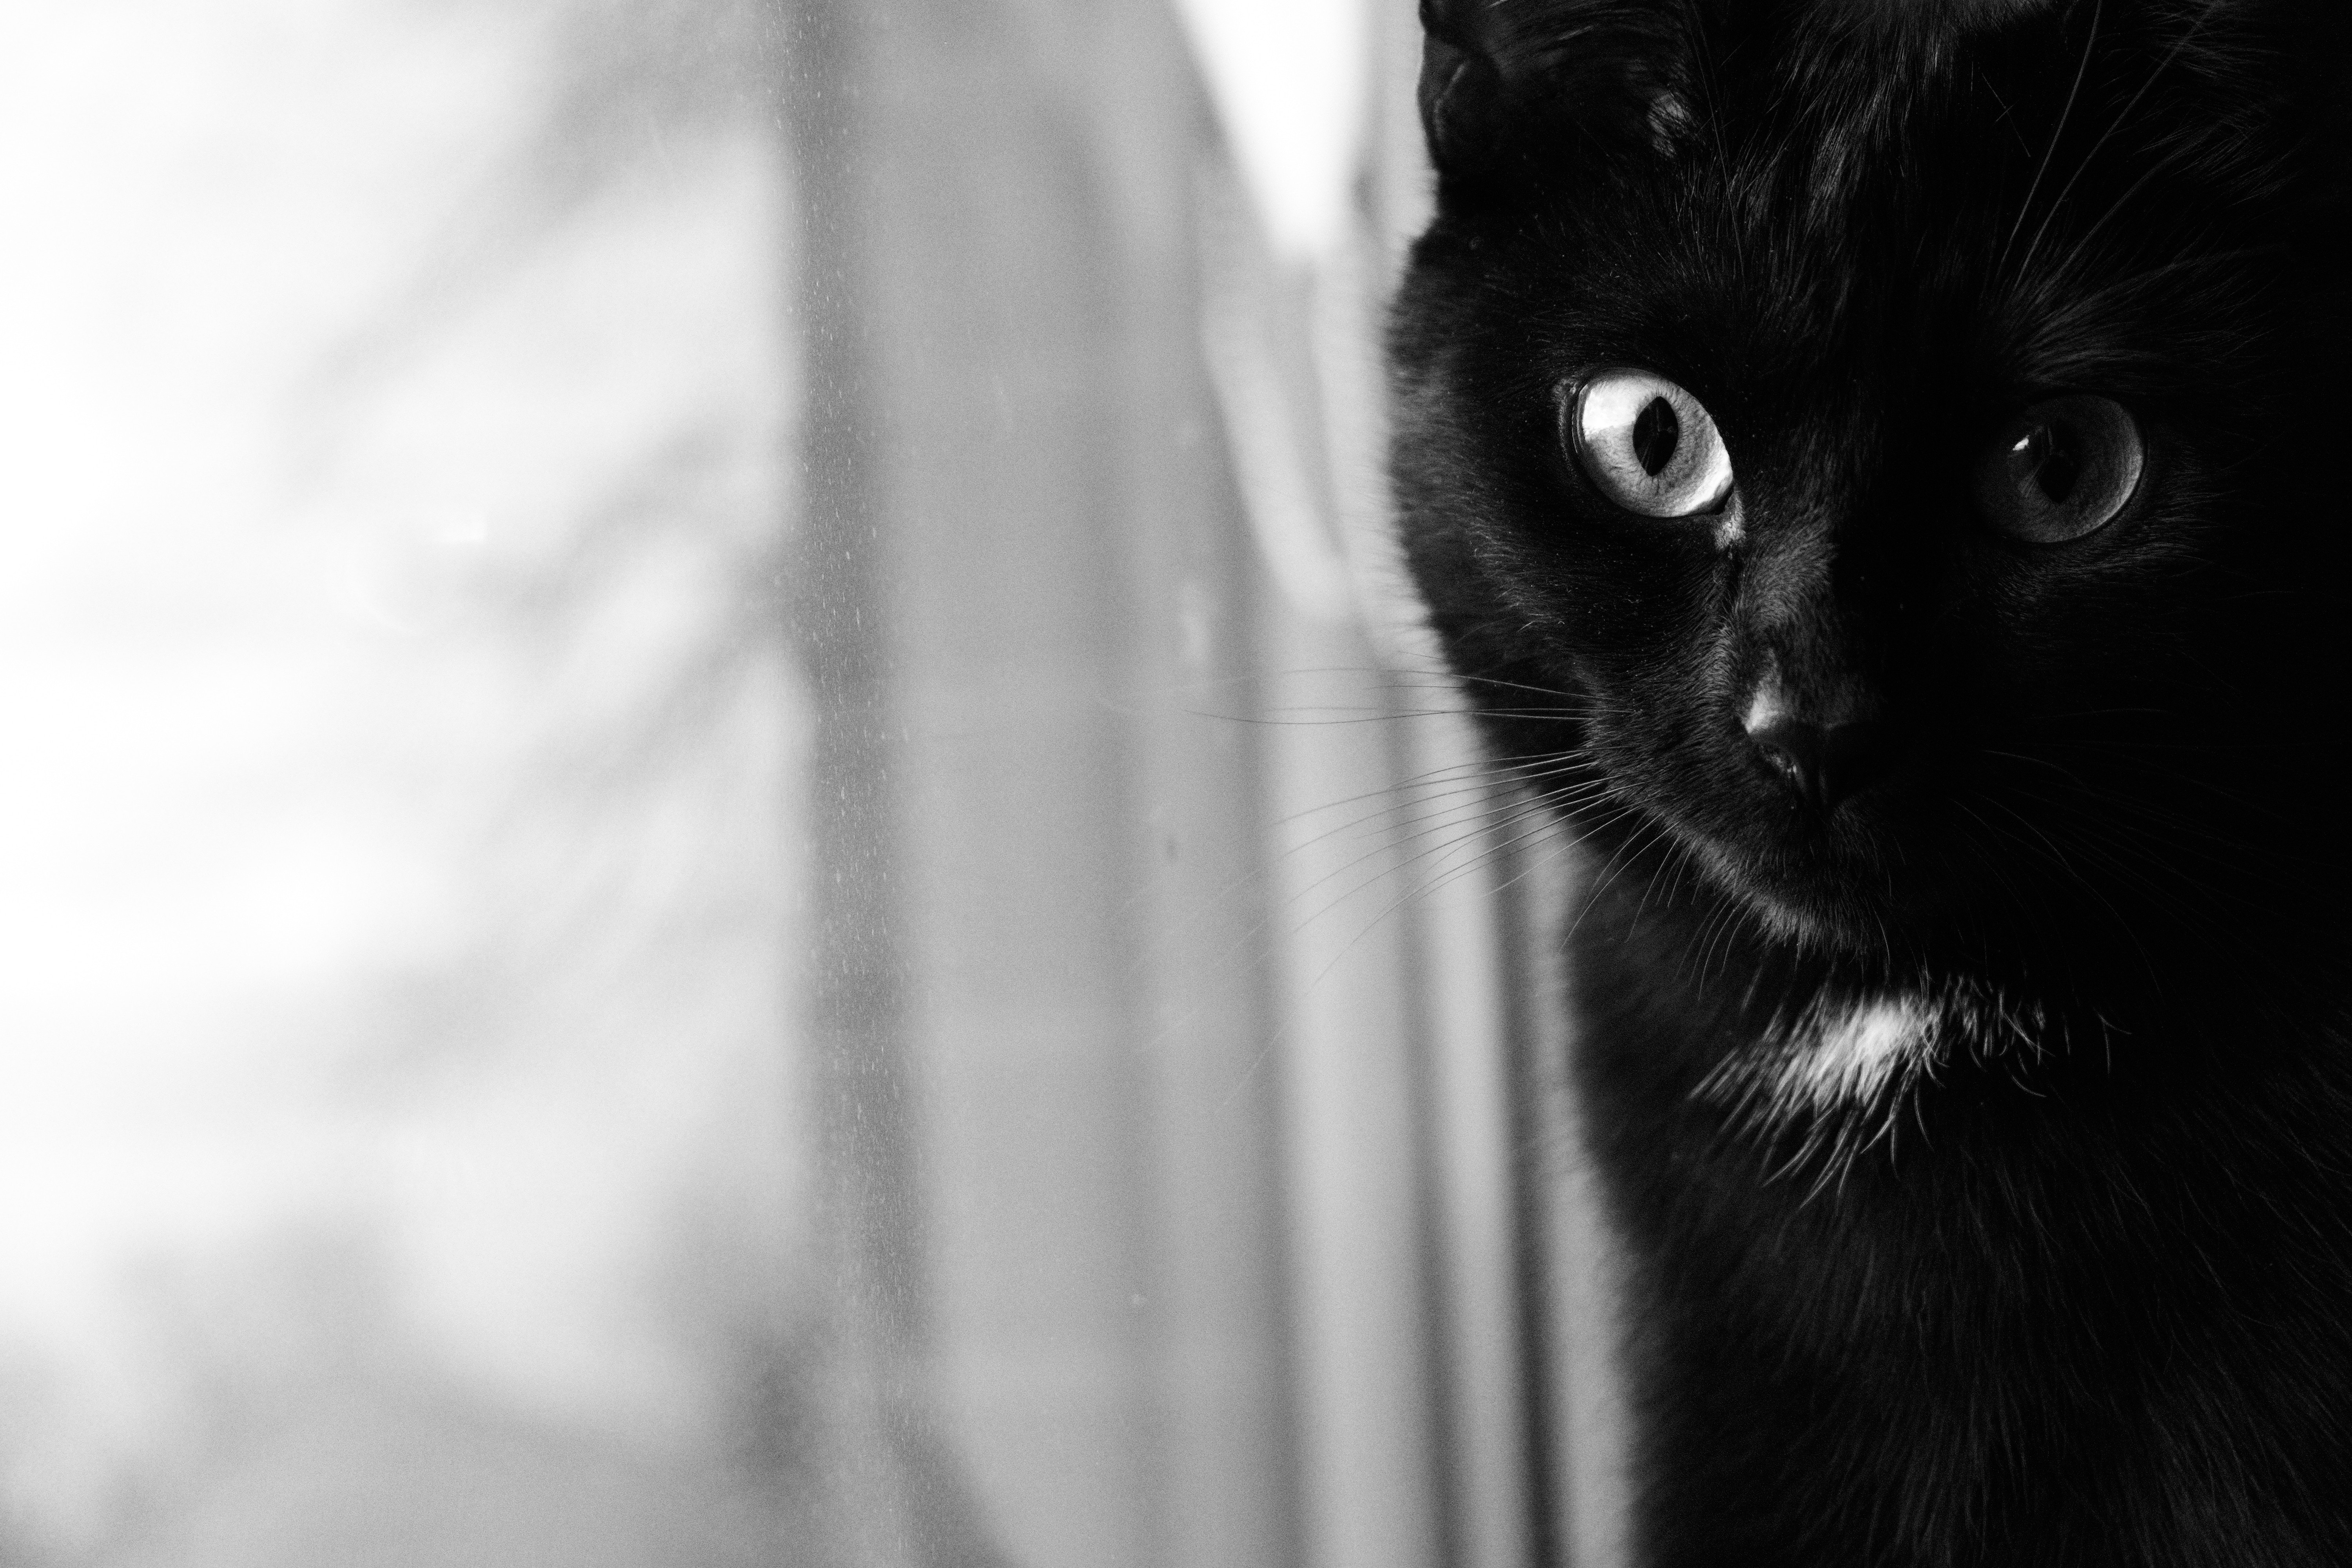 143681 download wallpaper Animals, Cat, Bw, Chb, Muzzle, Black Cat, Eyes screensavers and pictures for free